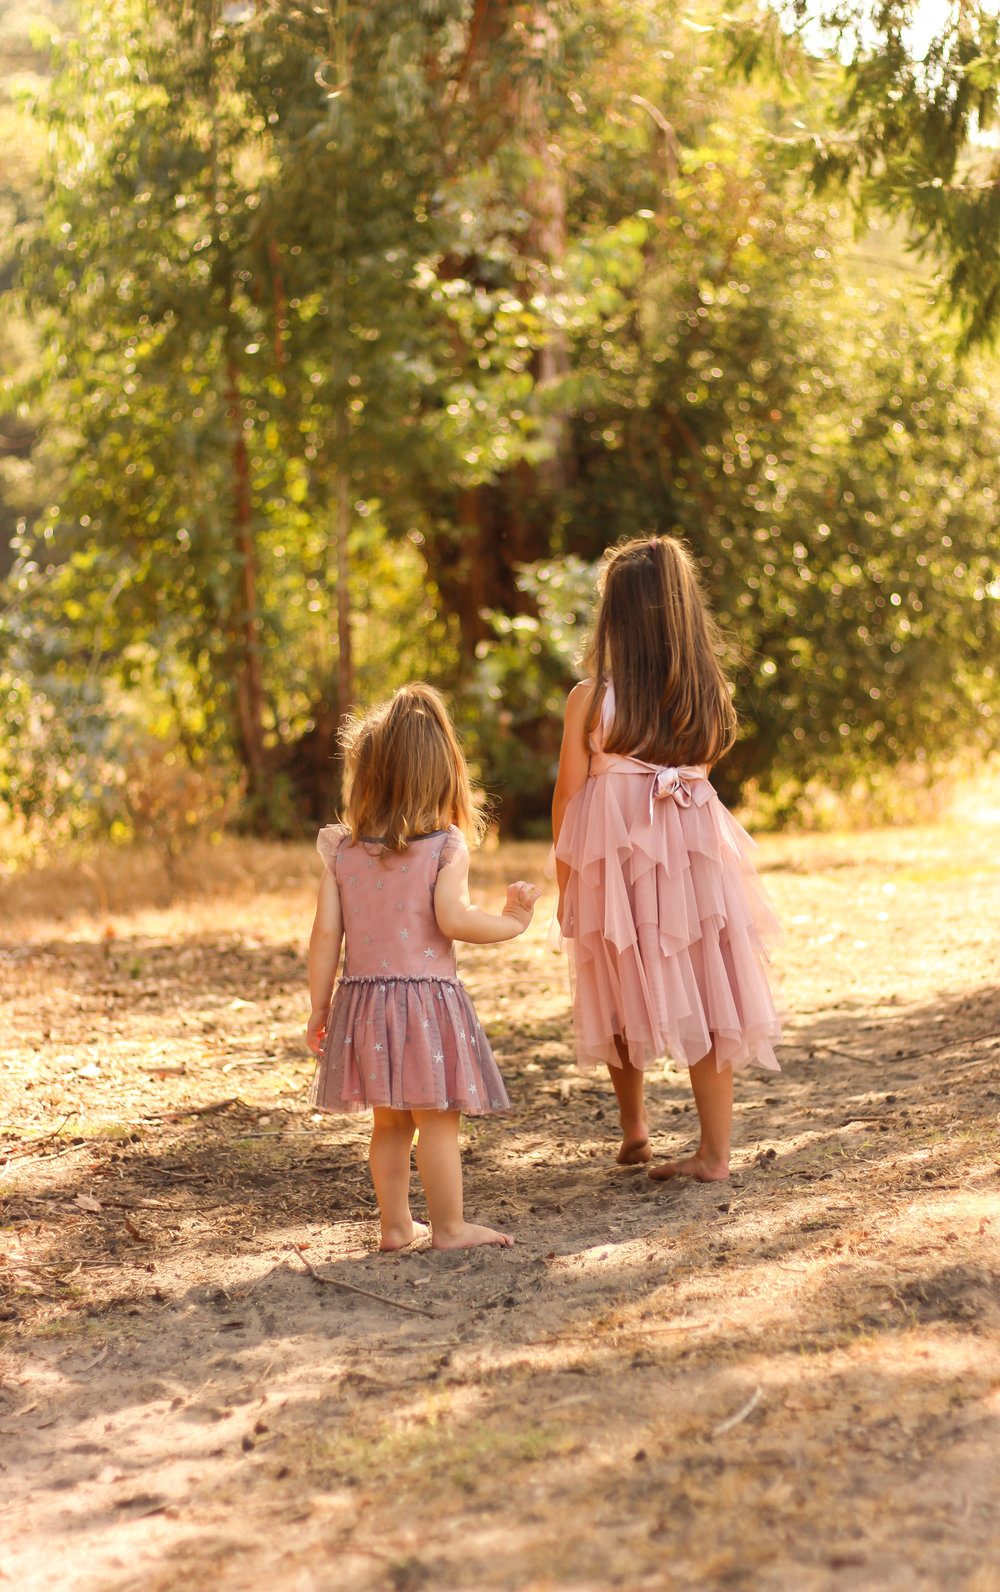 alexandra-rice-photography-quail-hollow-ranch-couple-kids-sisters-portrait-photoshoot-exploring.jpg